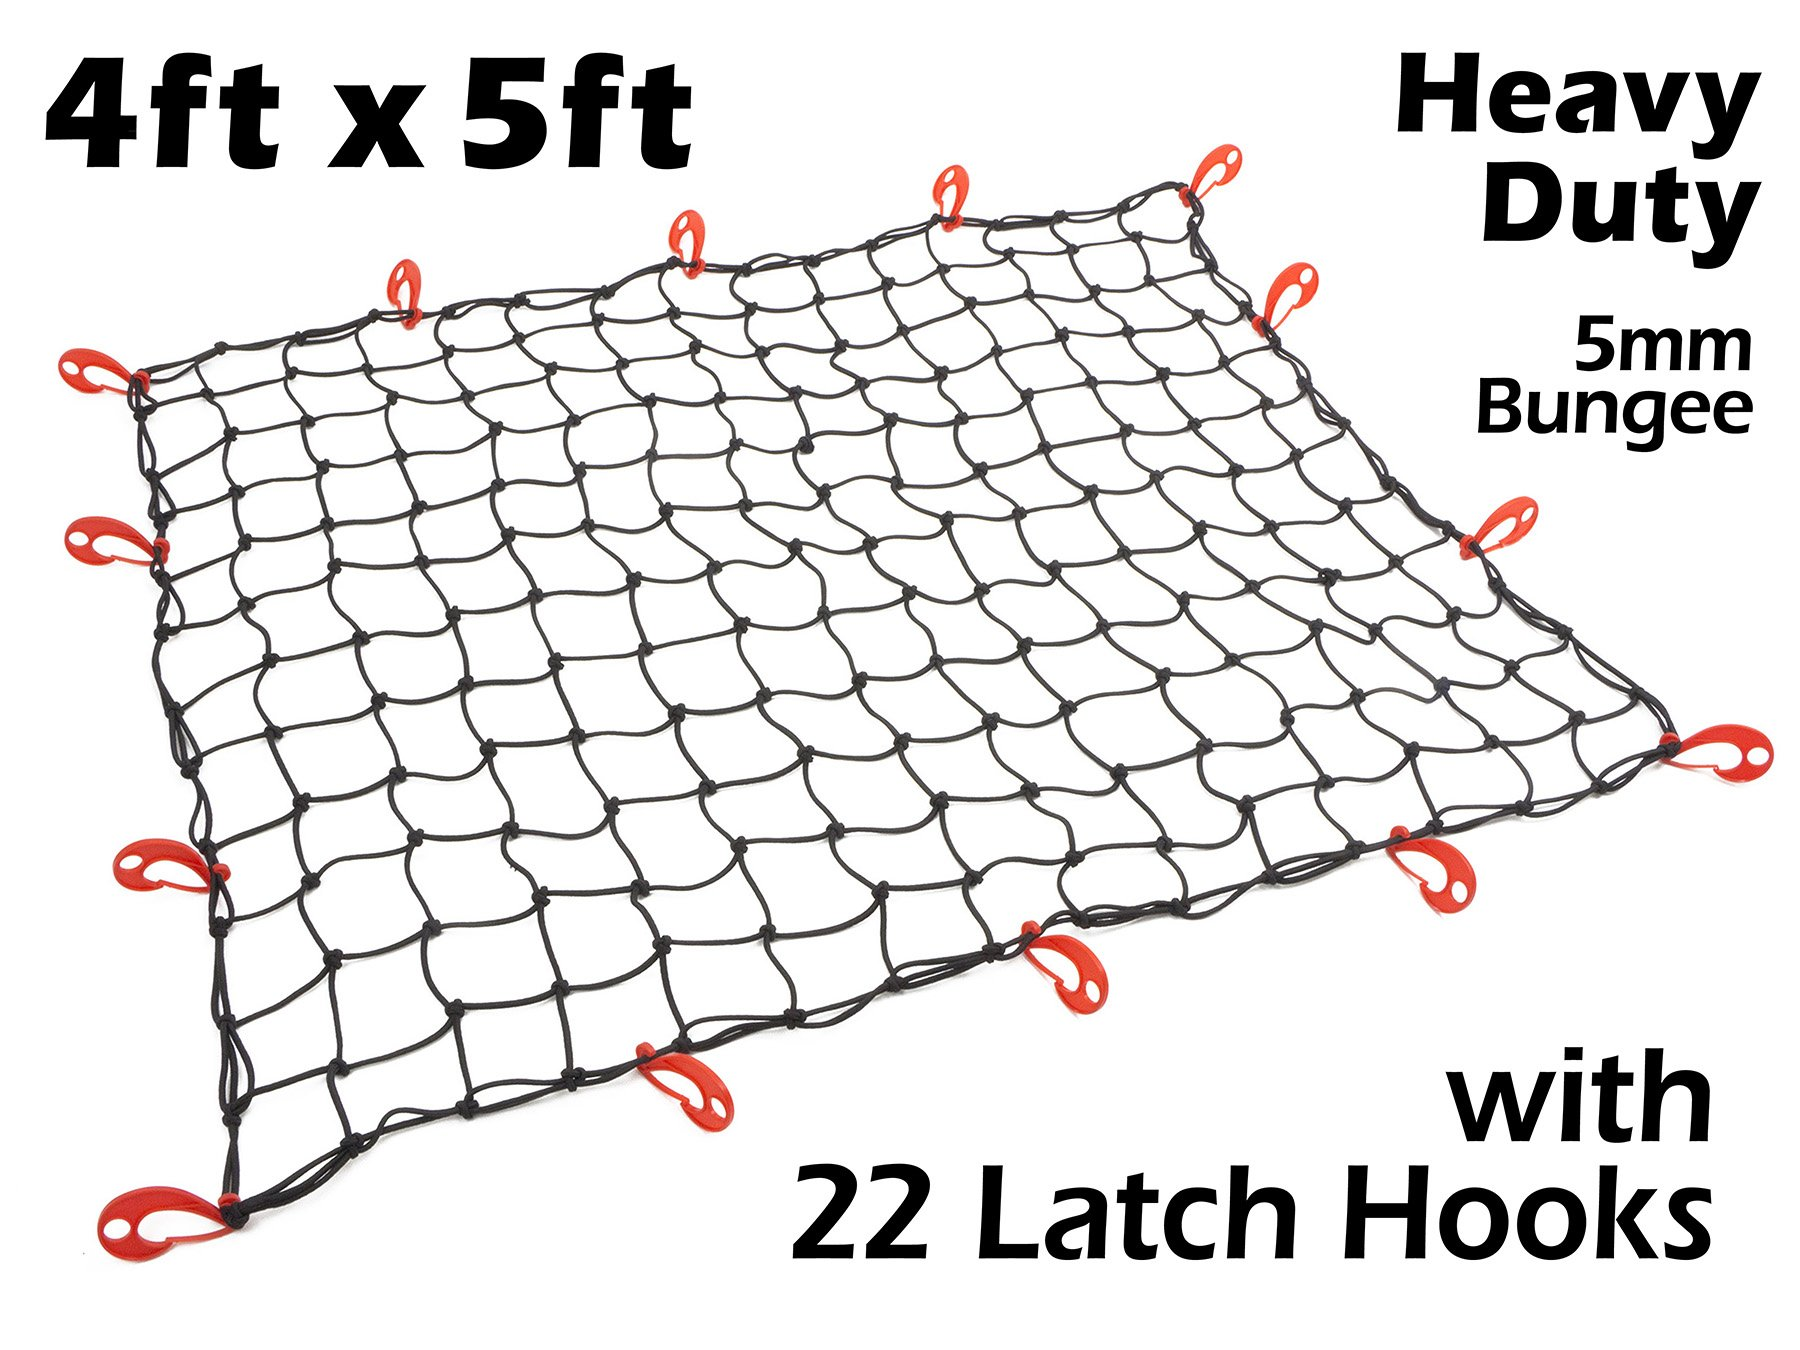 4ft x 5ft PowerTye Mfg Heavy-Duty 5mm Bungee Premium Elastic Cargo Net | Stretches to 72'' x 84'' | Includes 14 Large Latch Hooks, Black